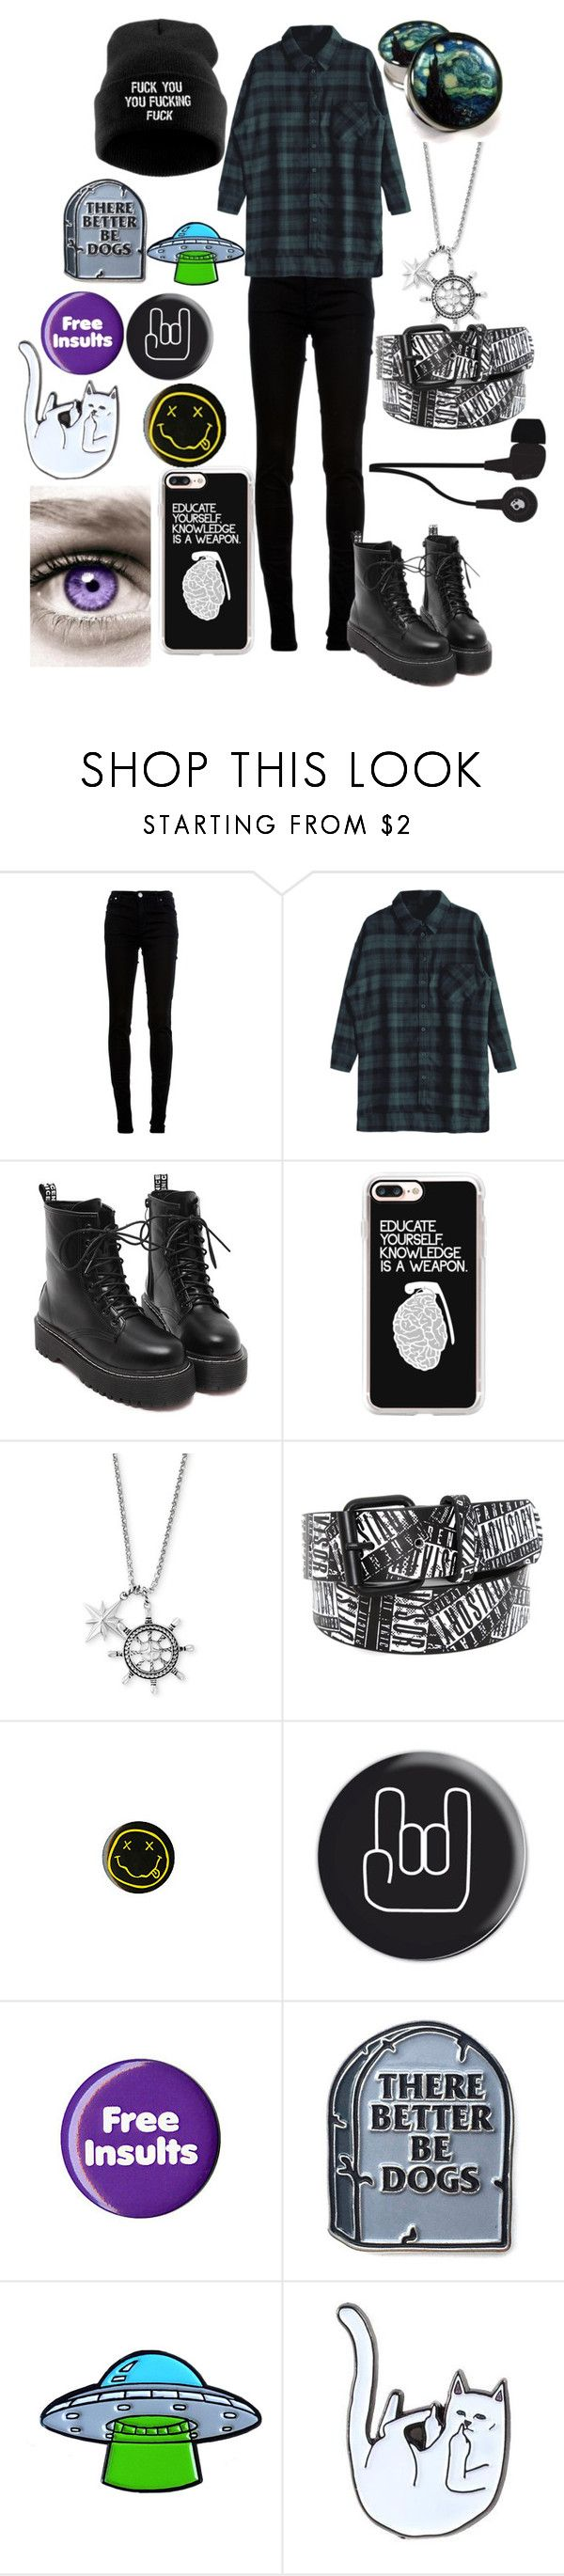 "f64cb75b2ea22a139b8dd5f397ebf494 - ""Untitled #727"" by dino-satan666 ❤ liked on Polyvore featuring dVb Victoria Be..."